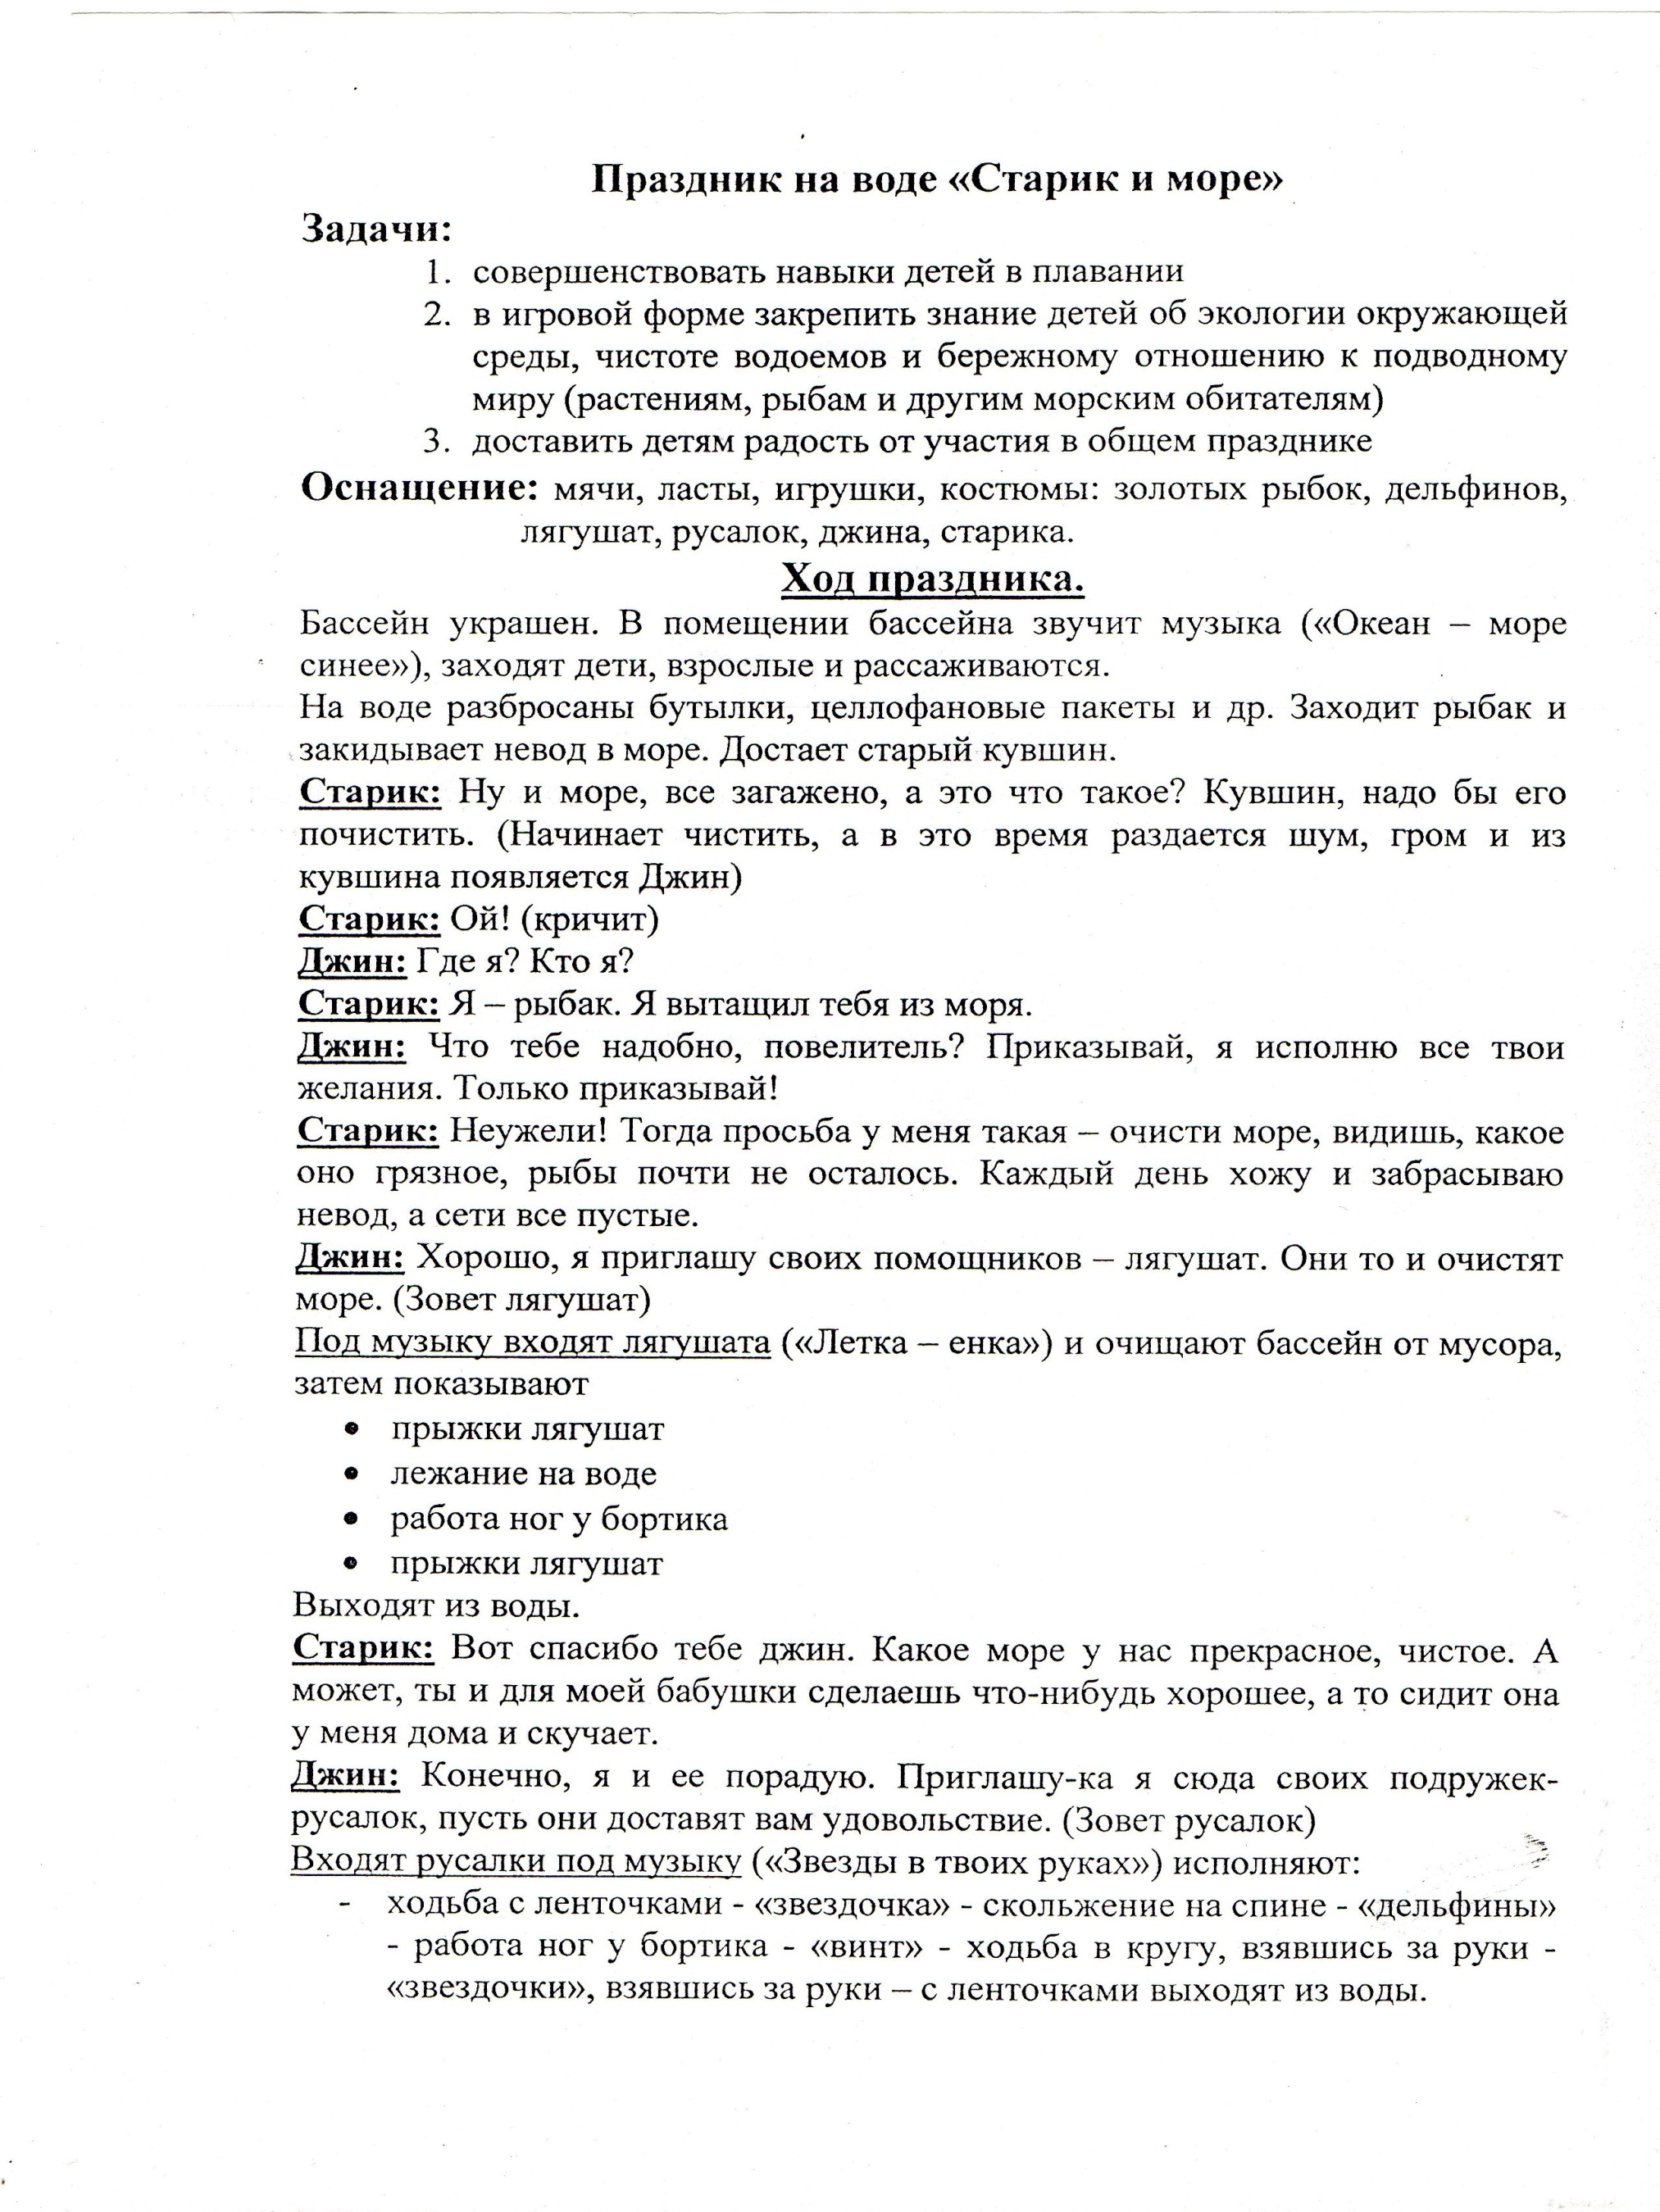 C:\Users\км\Pictures\img069.jpg